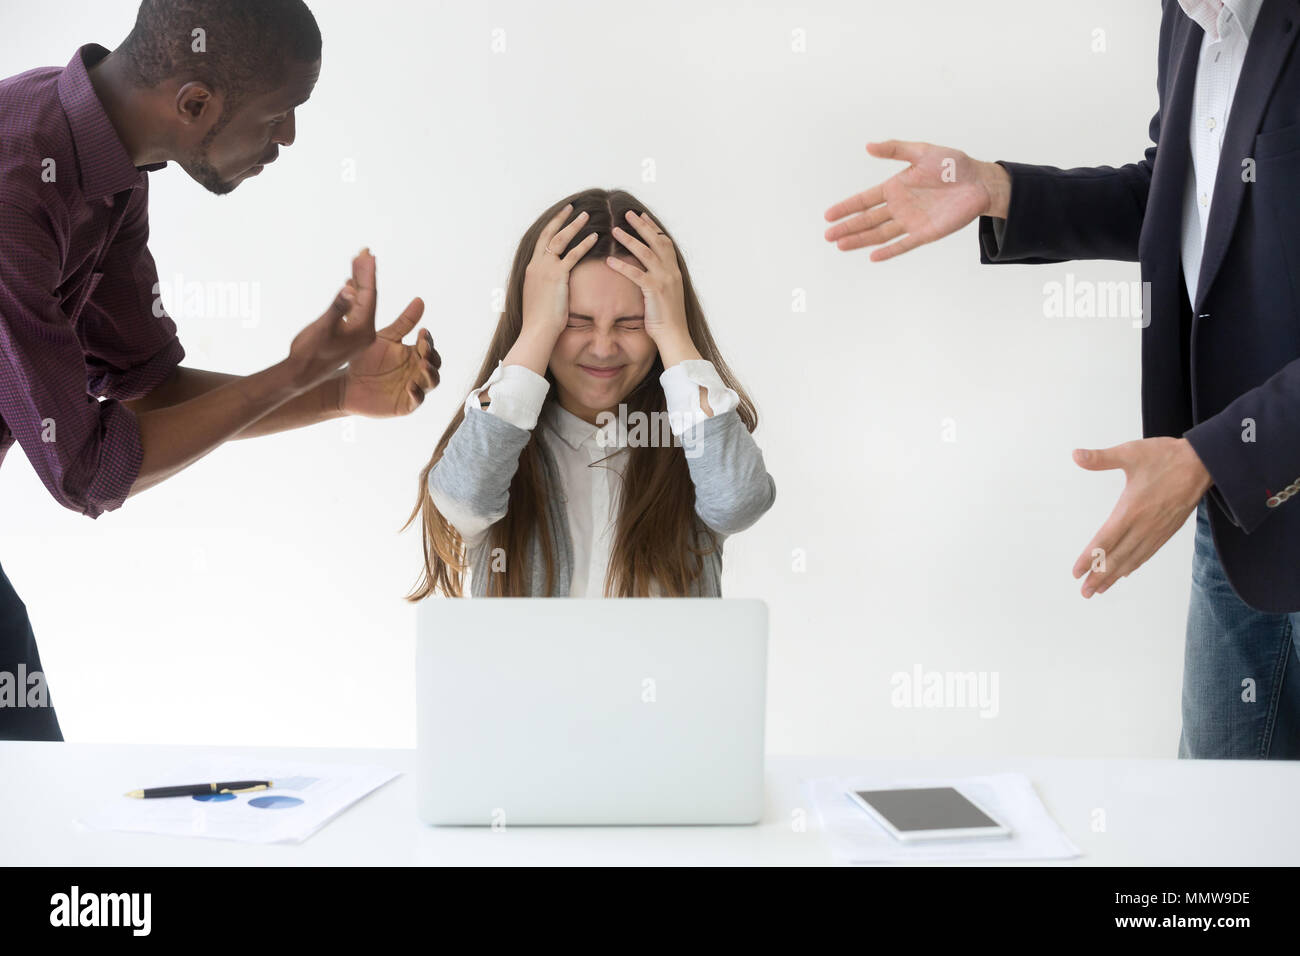 Angry overwhelmed businesswoman stressed about clients complaint - Stock Image